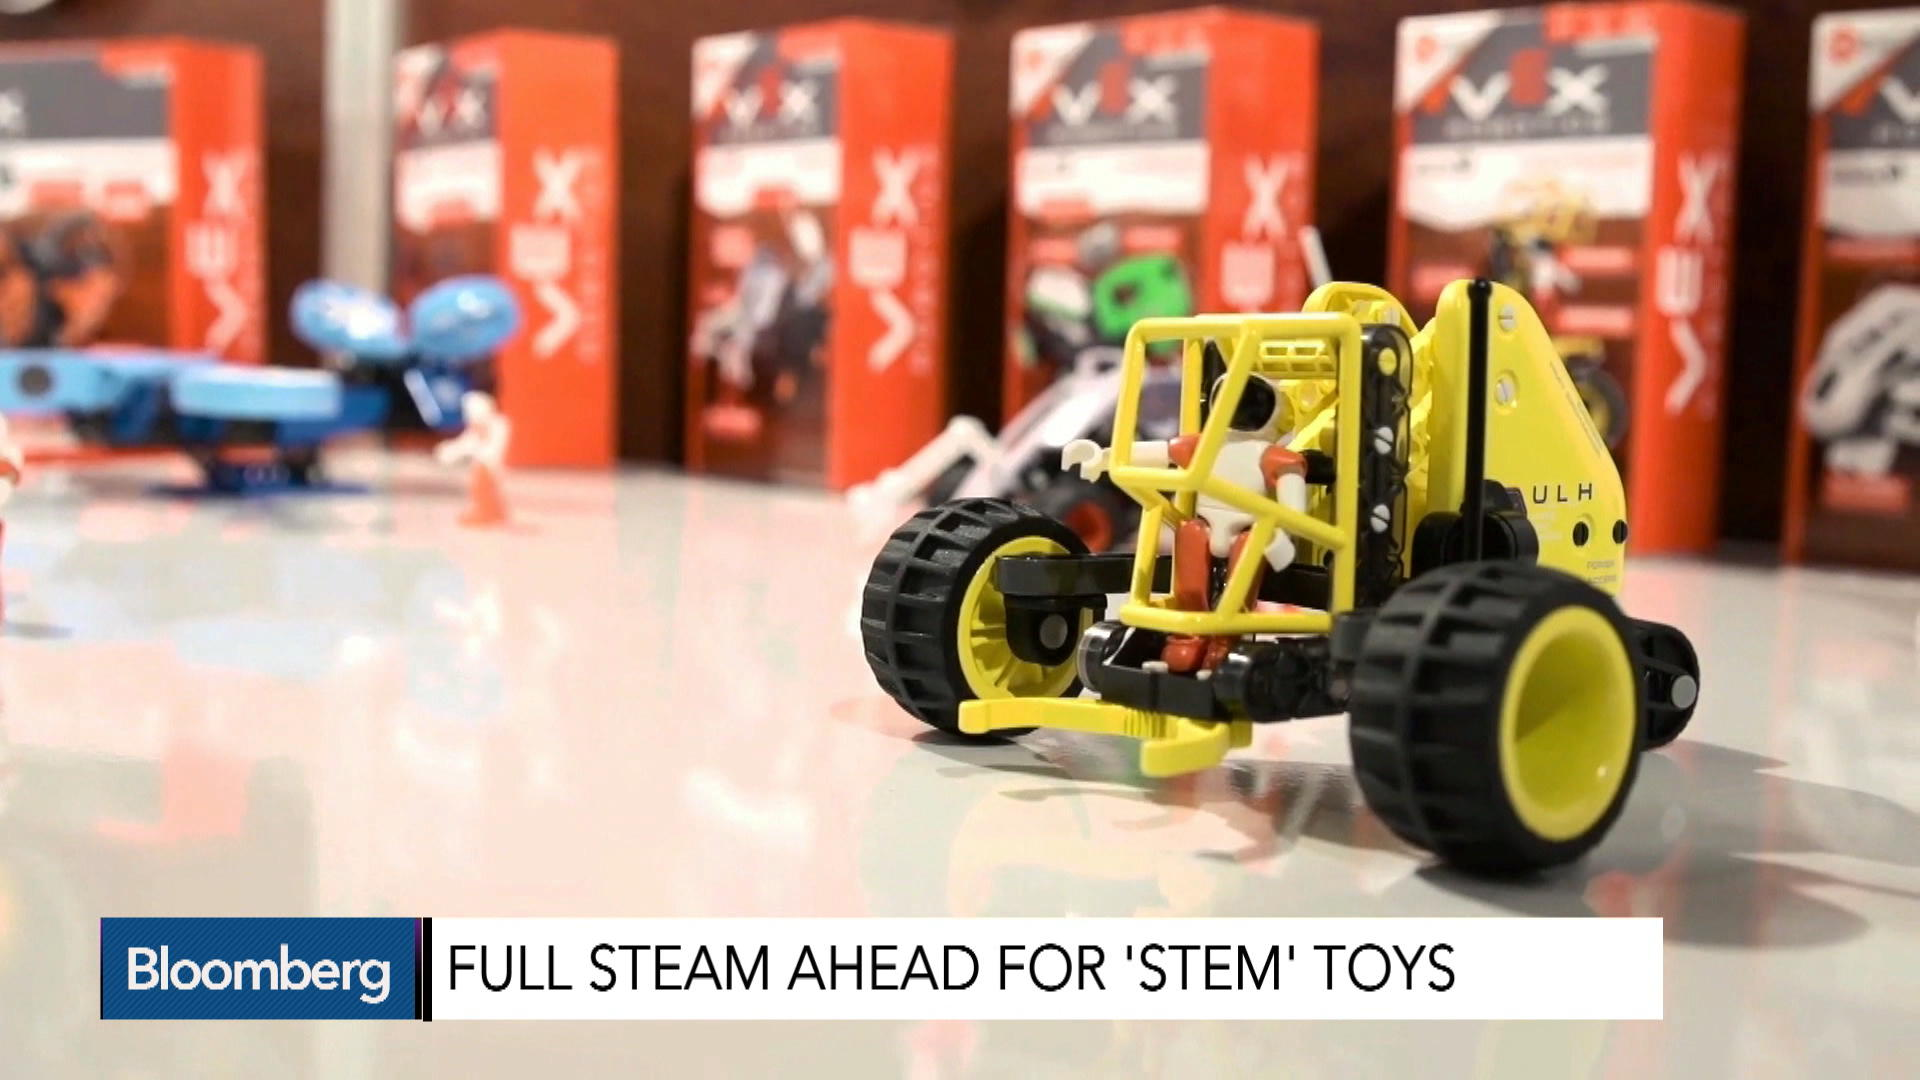 Full Steam Ahead For STEM Toys – Bloomberg